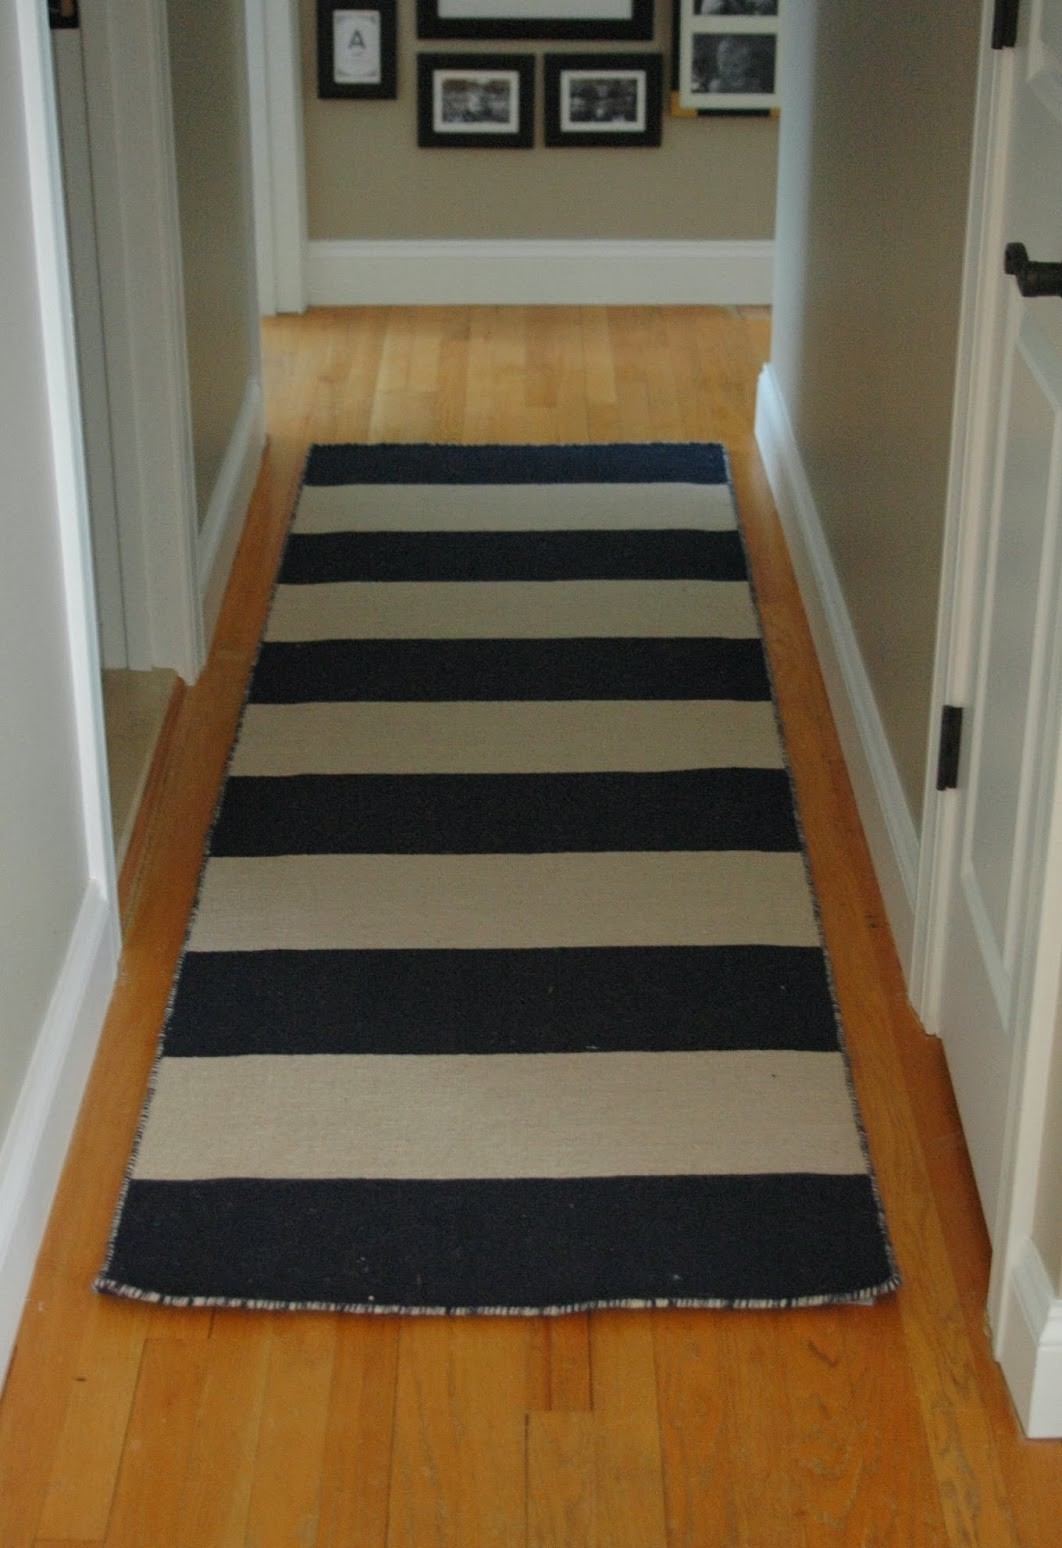 Black And White Striped Runner Rug Creative Rugs Decoration Regarding Extra Long Runners For Hallway (View 11 of 20)